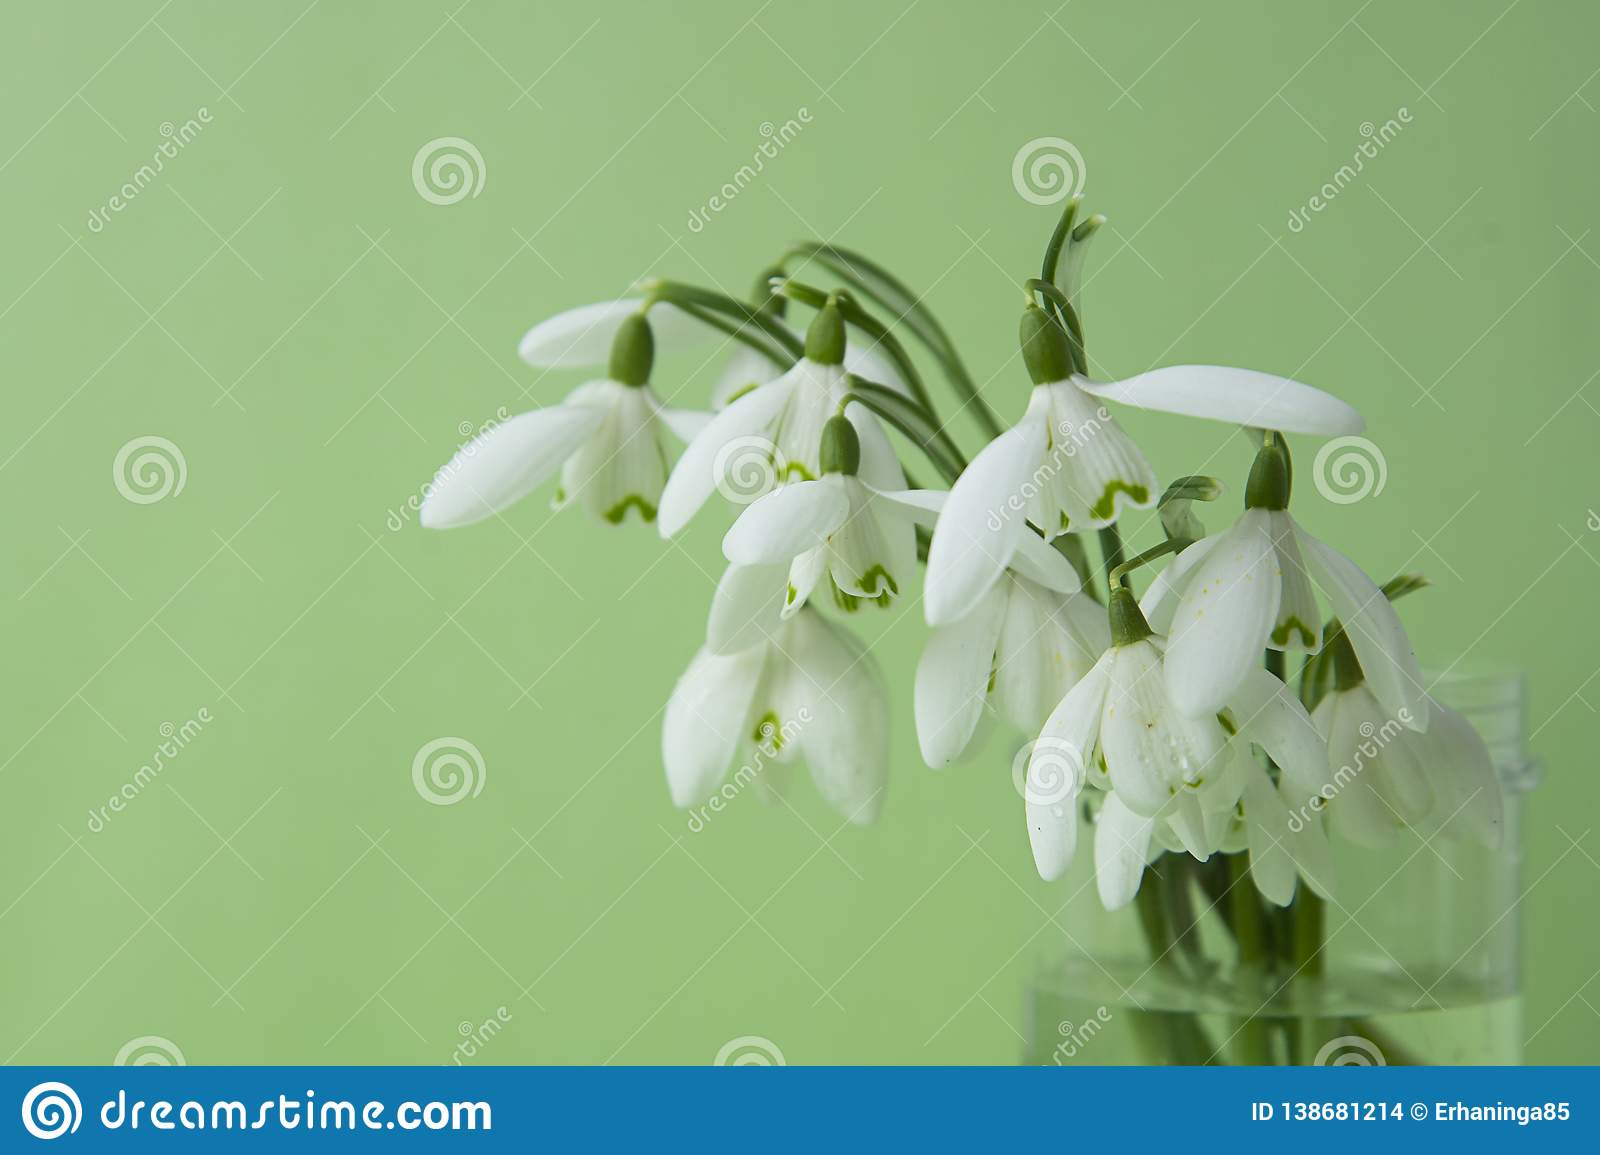 Spring flowers, white snowdrops over green background. Abstract background for greeting cards. Isolated